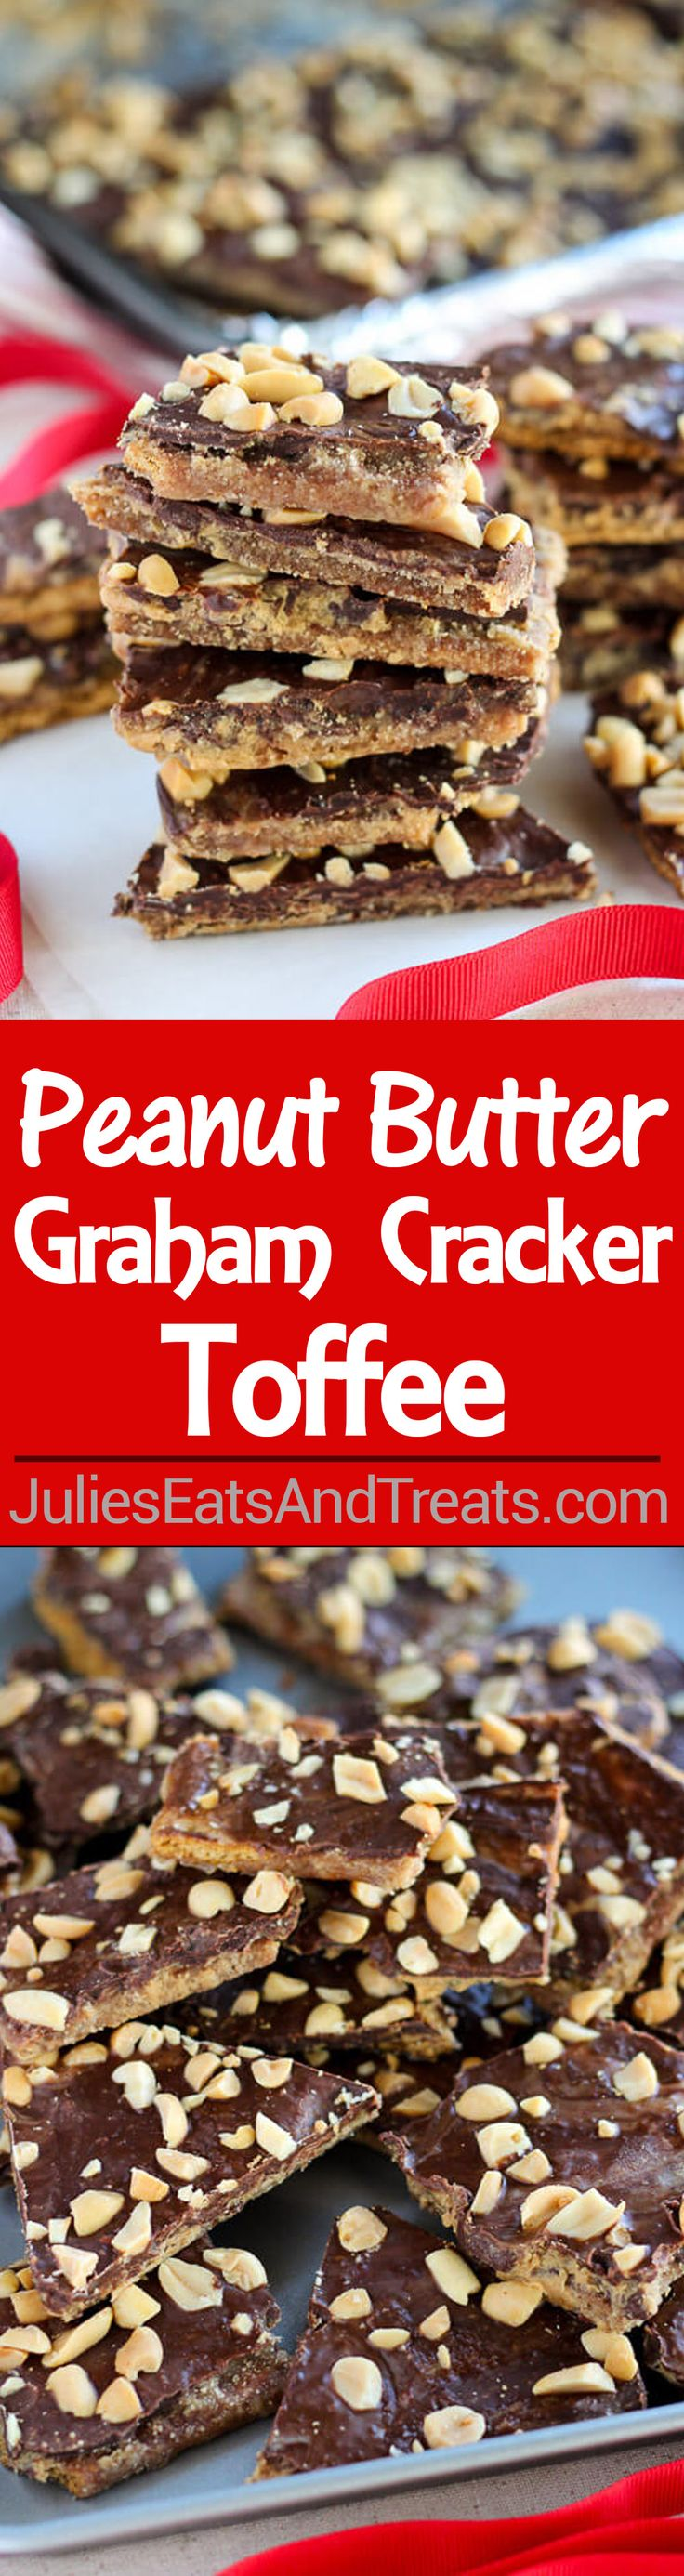 Peanut  Butter Graham Cracker Toffee Recipe – Peanut butter and chocolate combine in this easy graham cracker toffee. Sweet and salty with crunchy buttery layers. No candy thermometer needed!